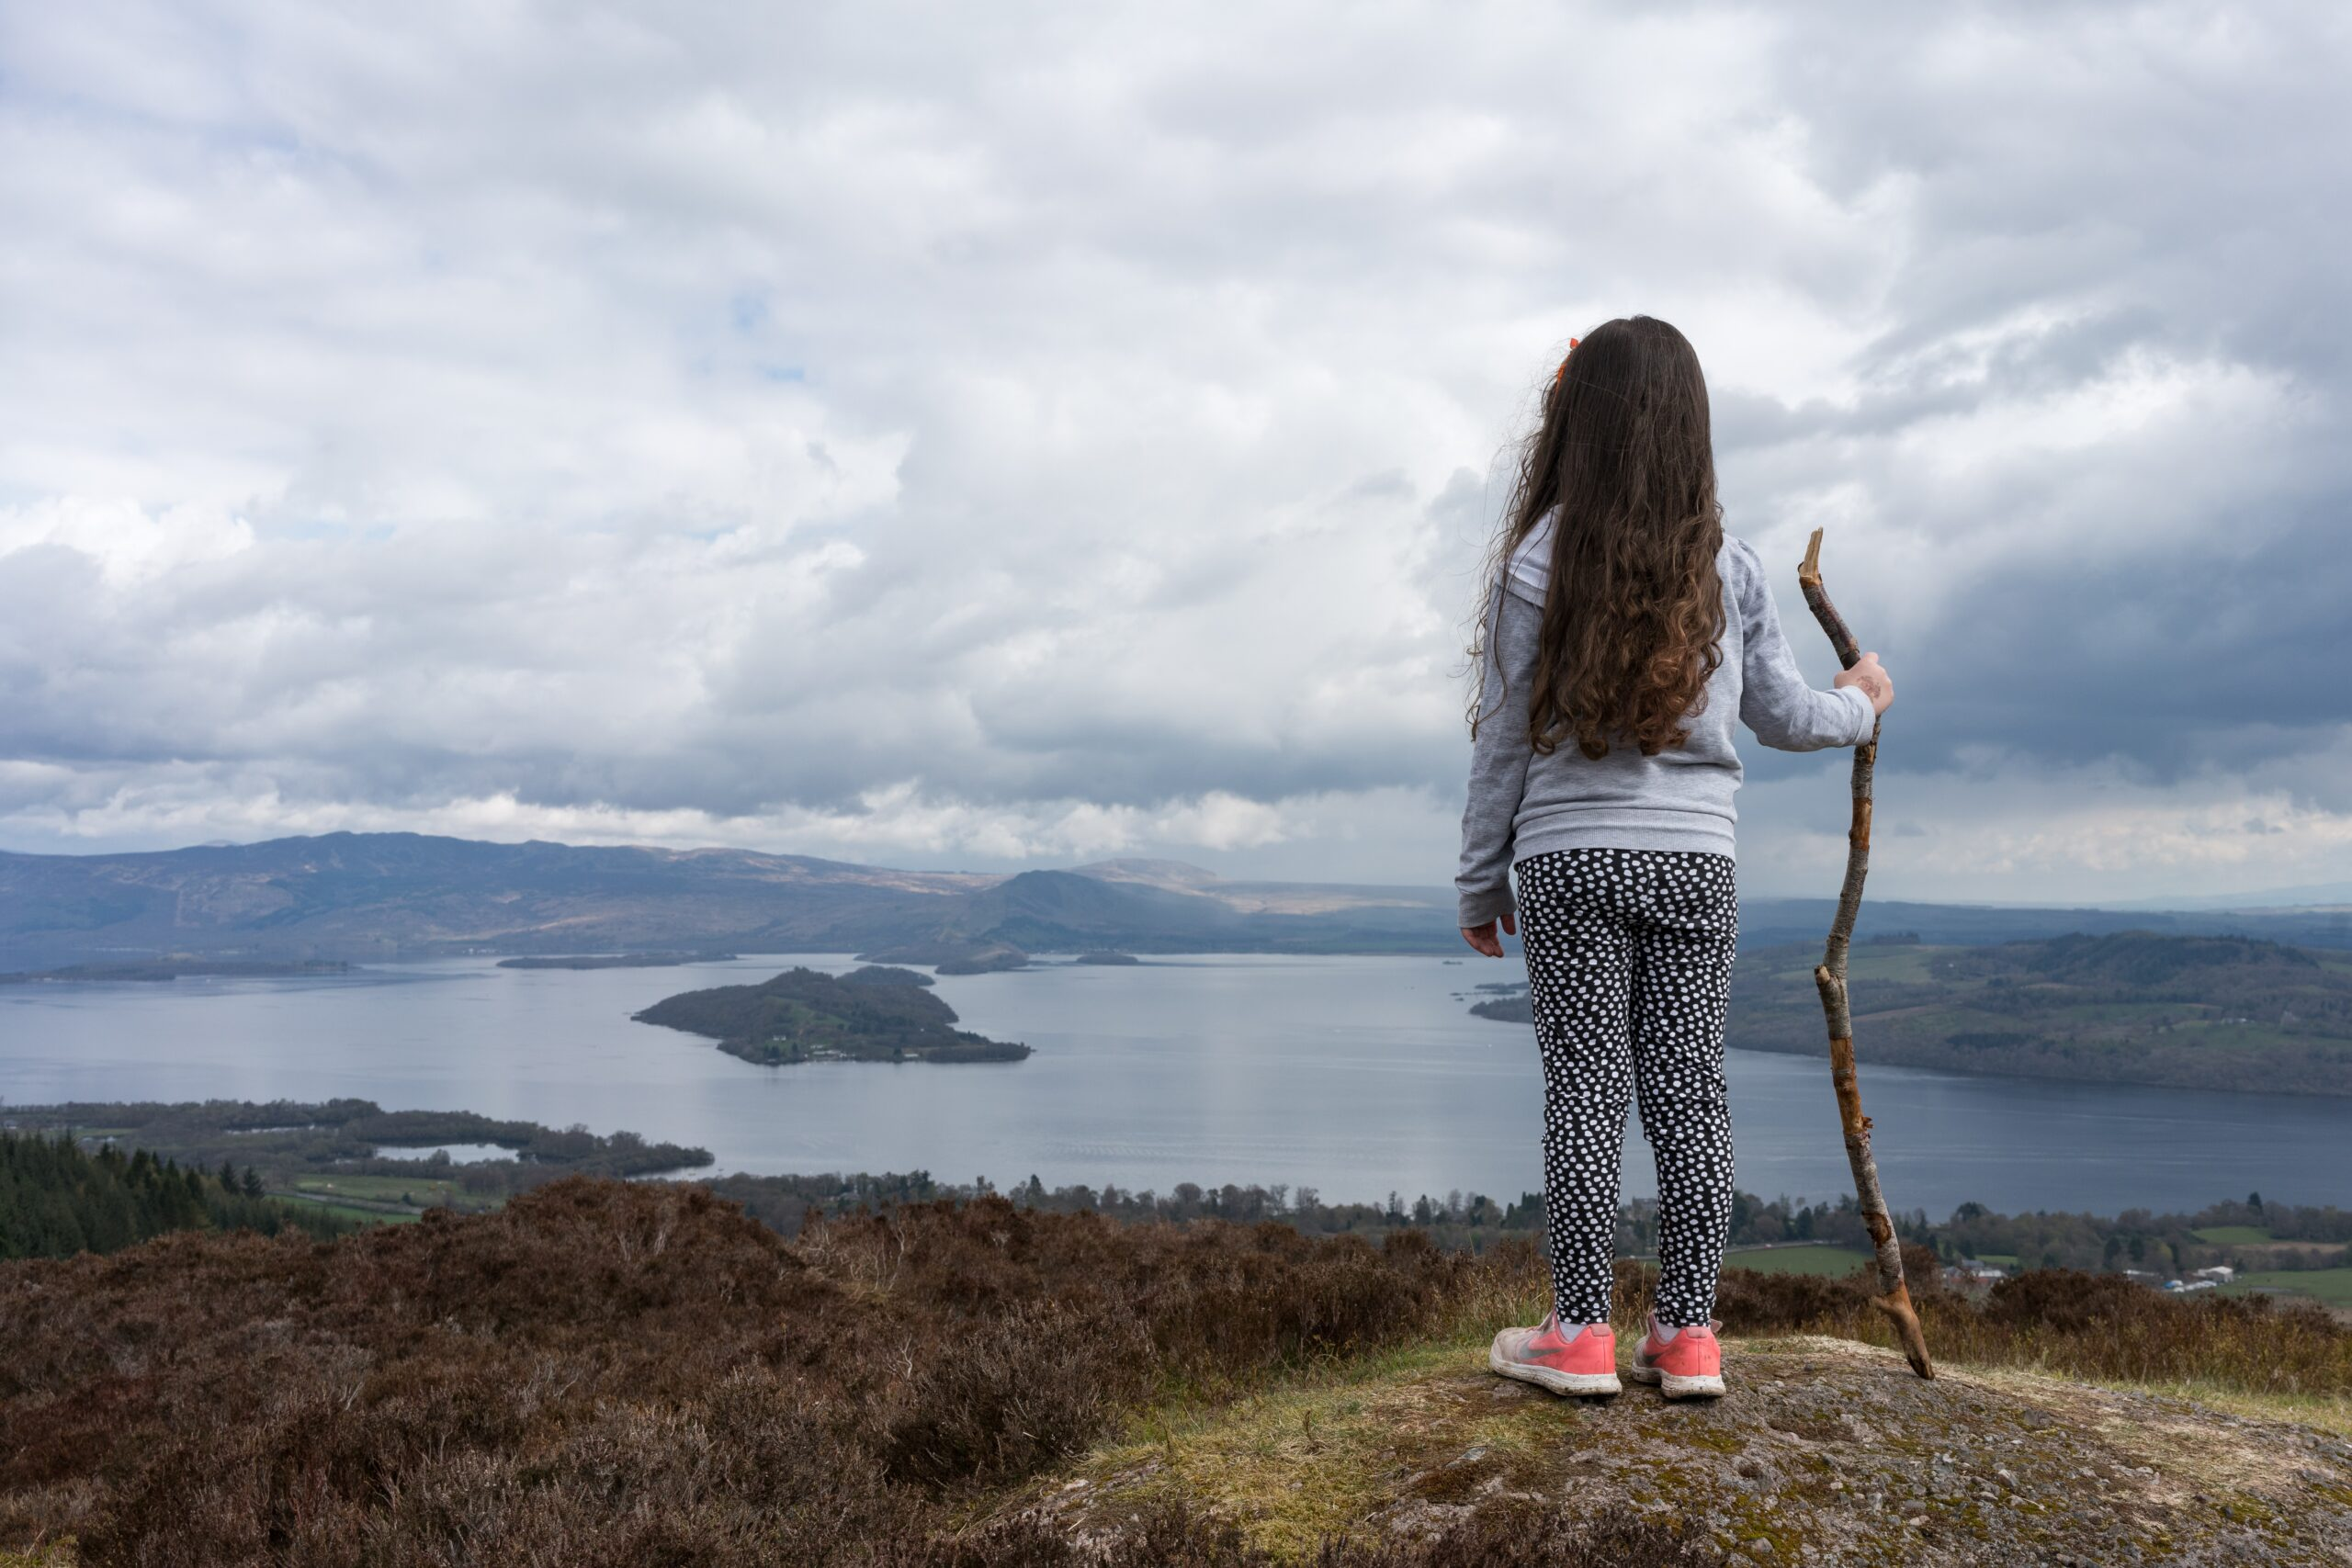 Girl with long brown hair stand on rock looking out onto hills holding a stick